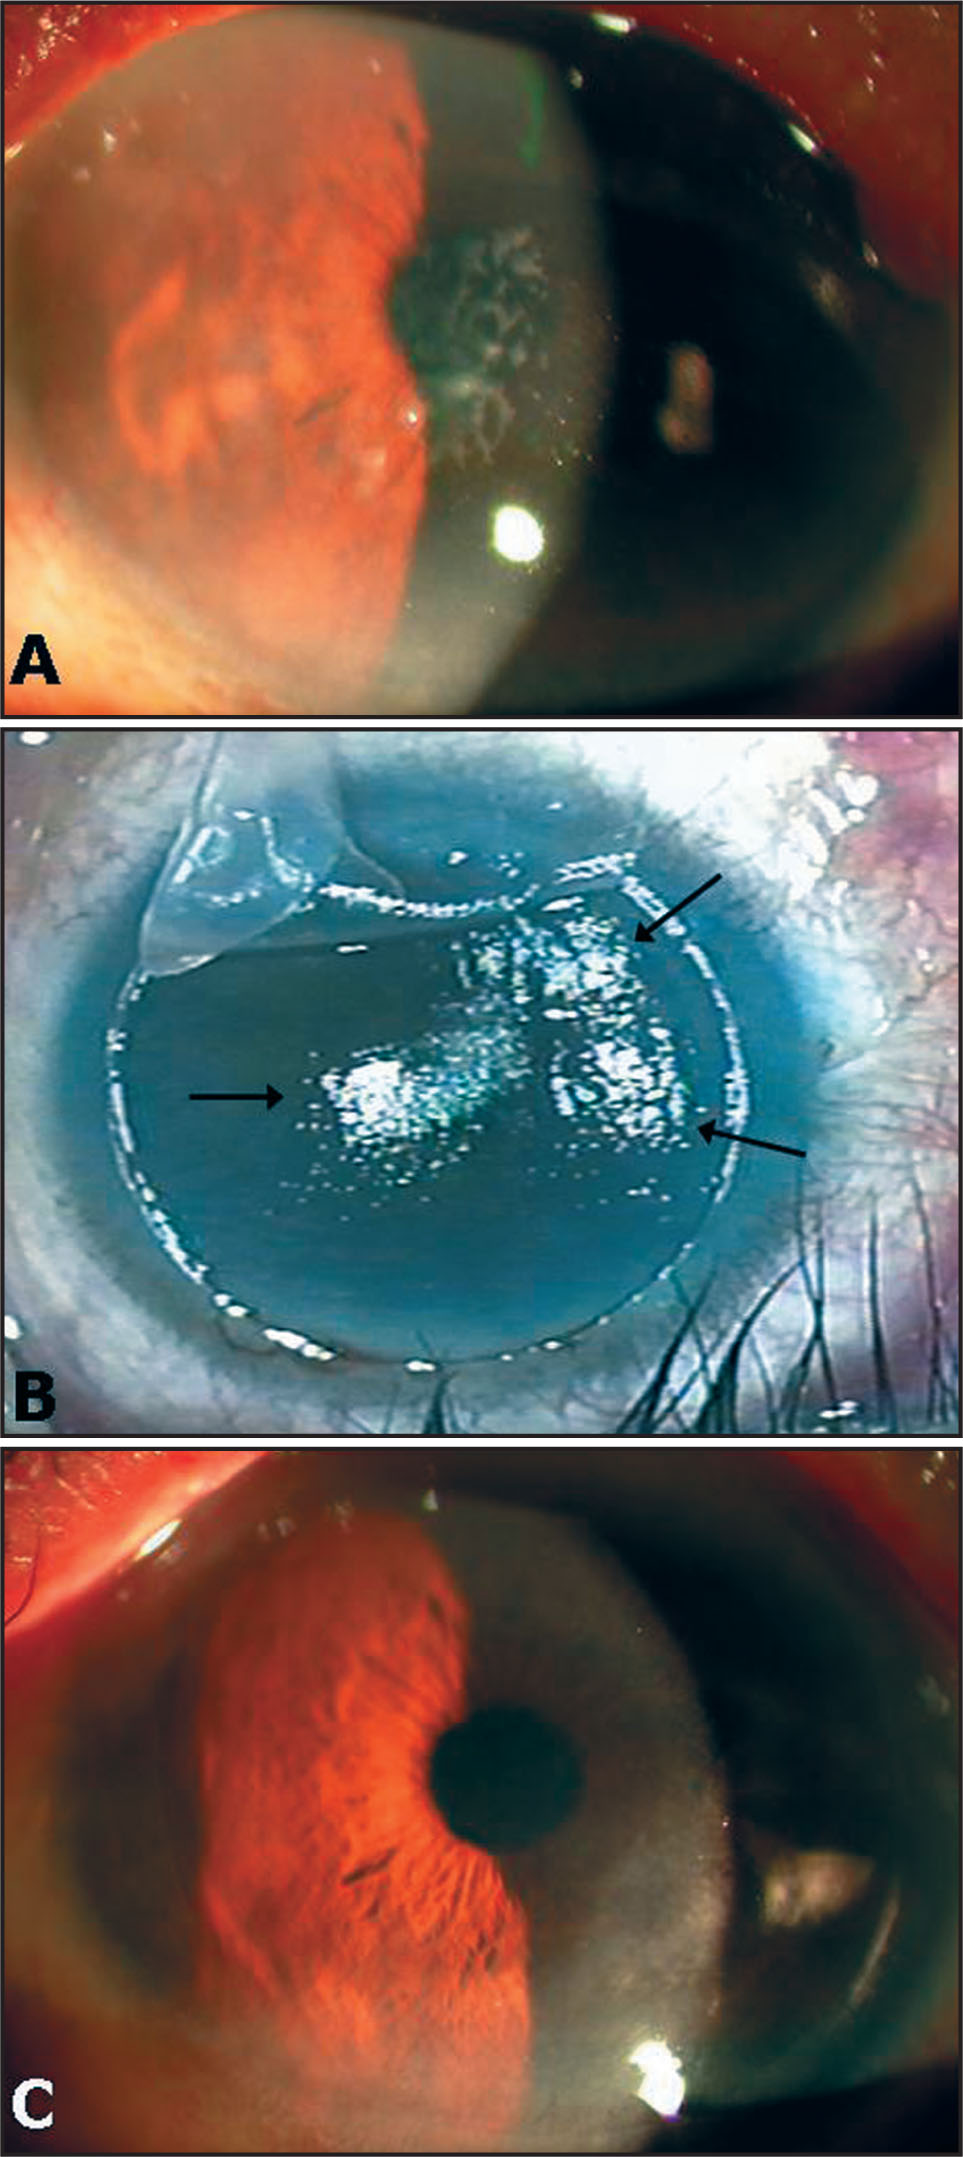 Case Photographs. (A) Preoperative Photograph Showing Cirrus-Like Cloudy Anterior Corneal Opacity Involving the Pupil Center. (B) When Lifting the Flap, Mild Resistance Was Encountered Beneath the Opaque Area. After Removal of the Corneal Flap, a Slightly Irregular Stromal Surface Was Observed (black Arrows). (C) A Stable and Smooth Corneal Surface Was Observed 2 Months After Lamellar Keratectomy Using a Femtosecond Laser.